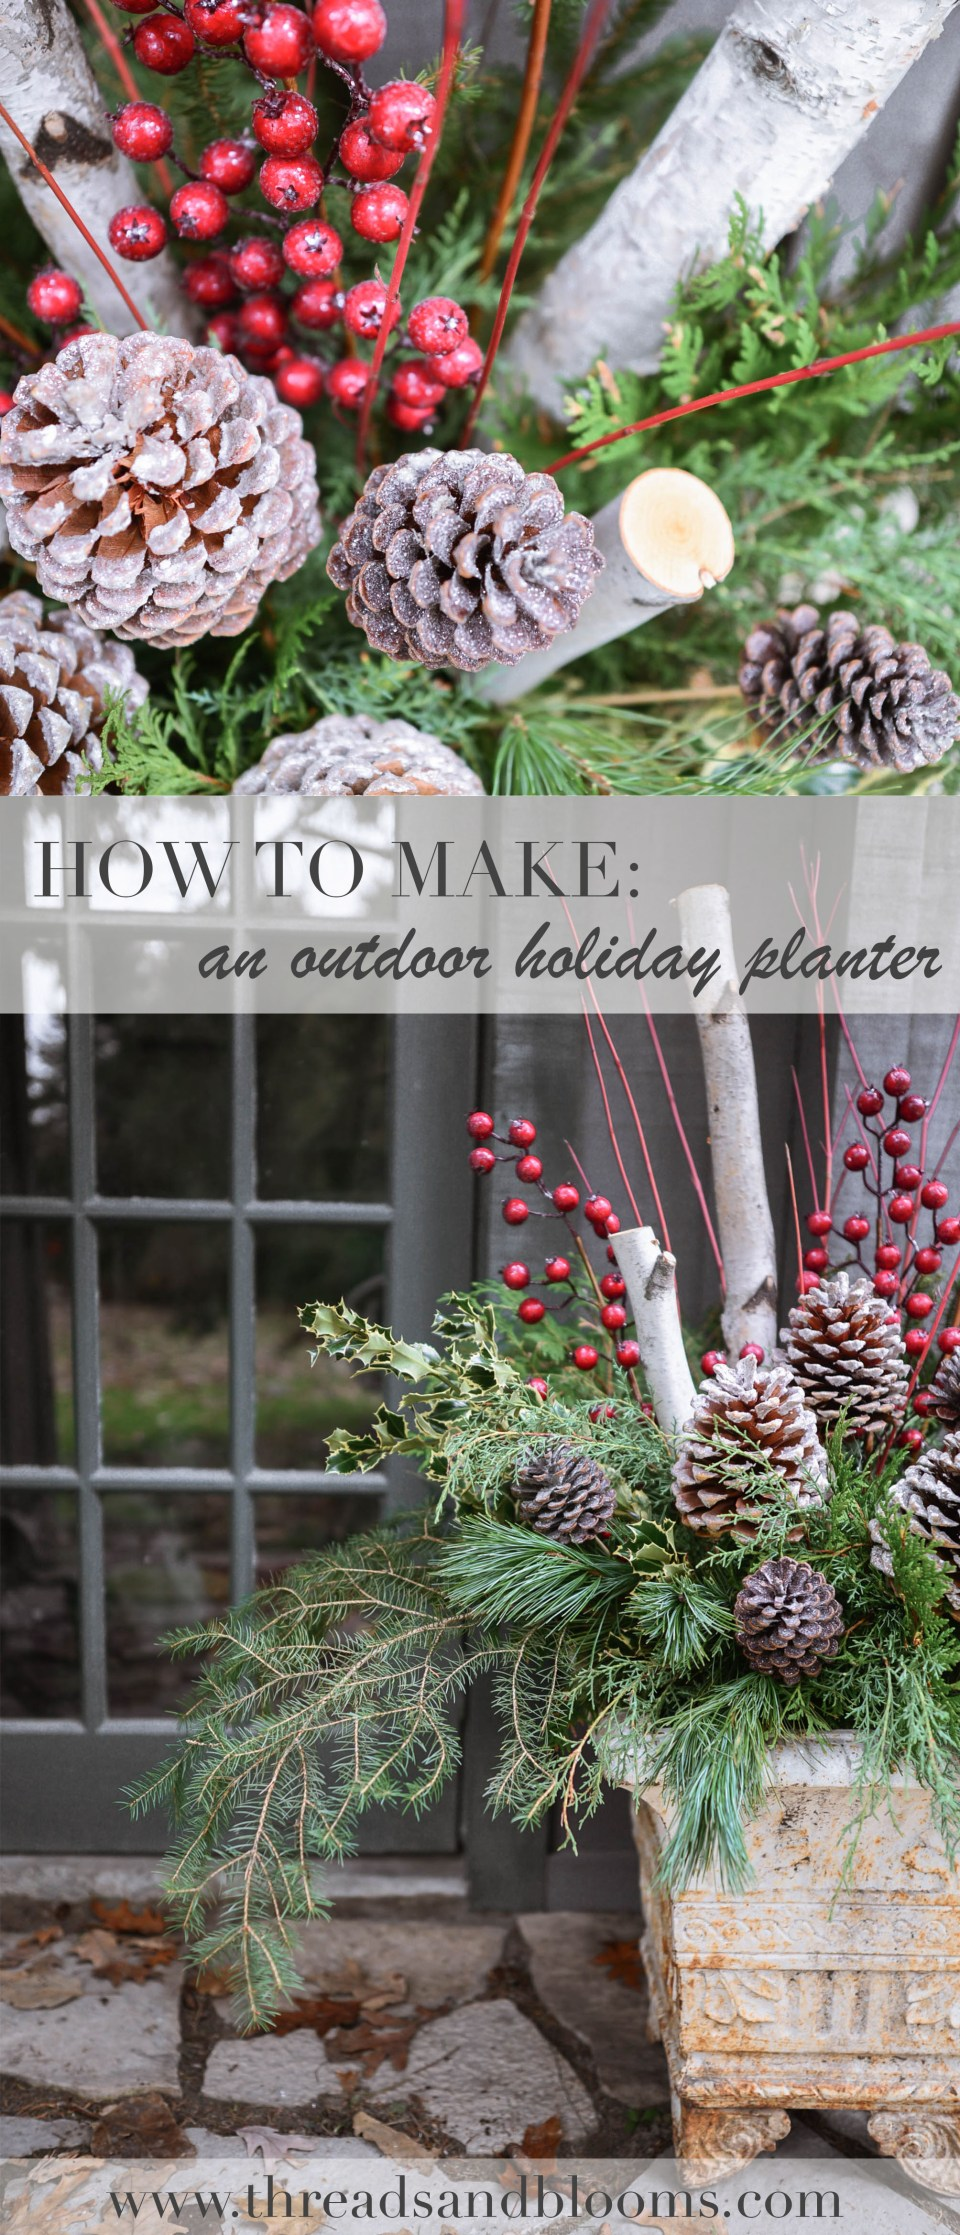 How to make an Outdoor Holiday Planter